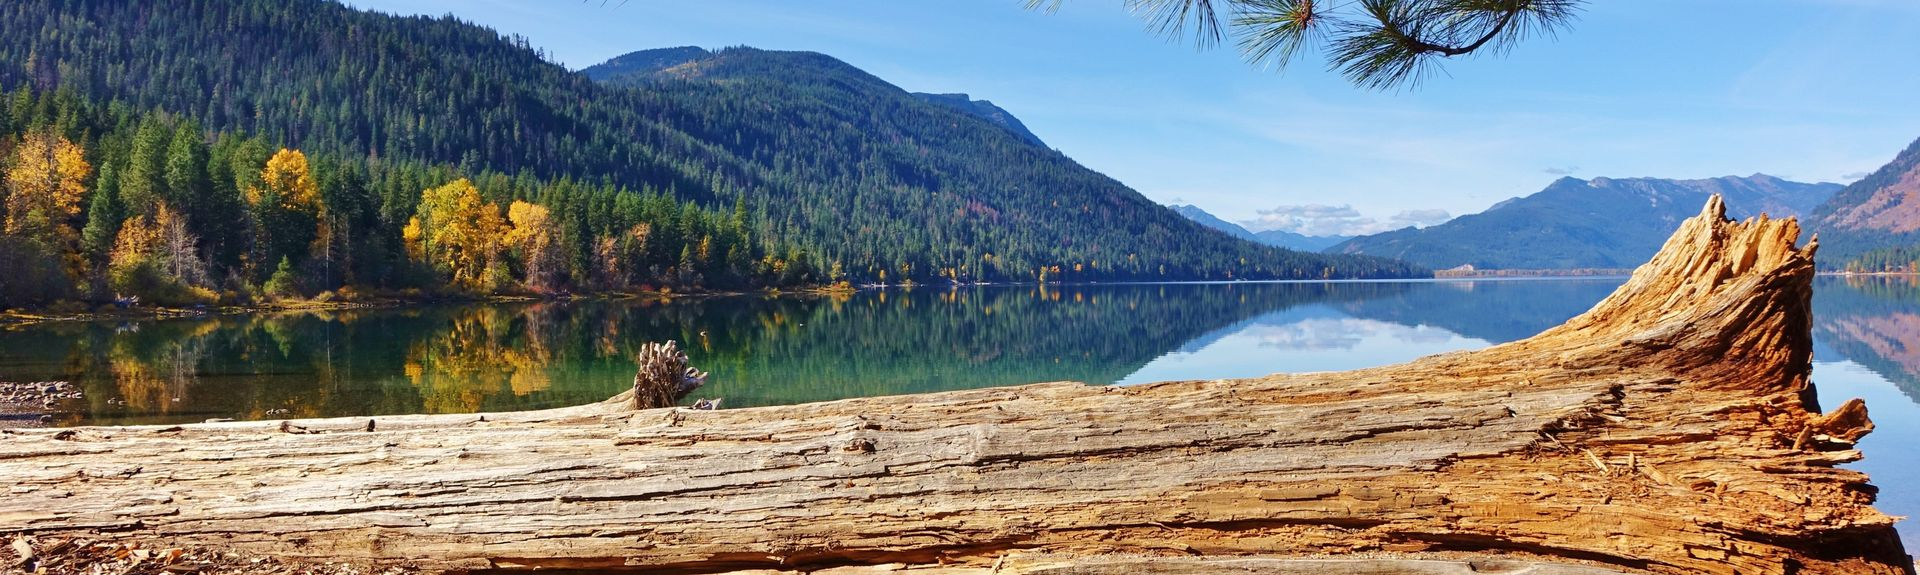 Lake Wenatchee, Leavenworth, WA, USA